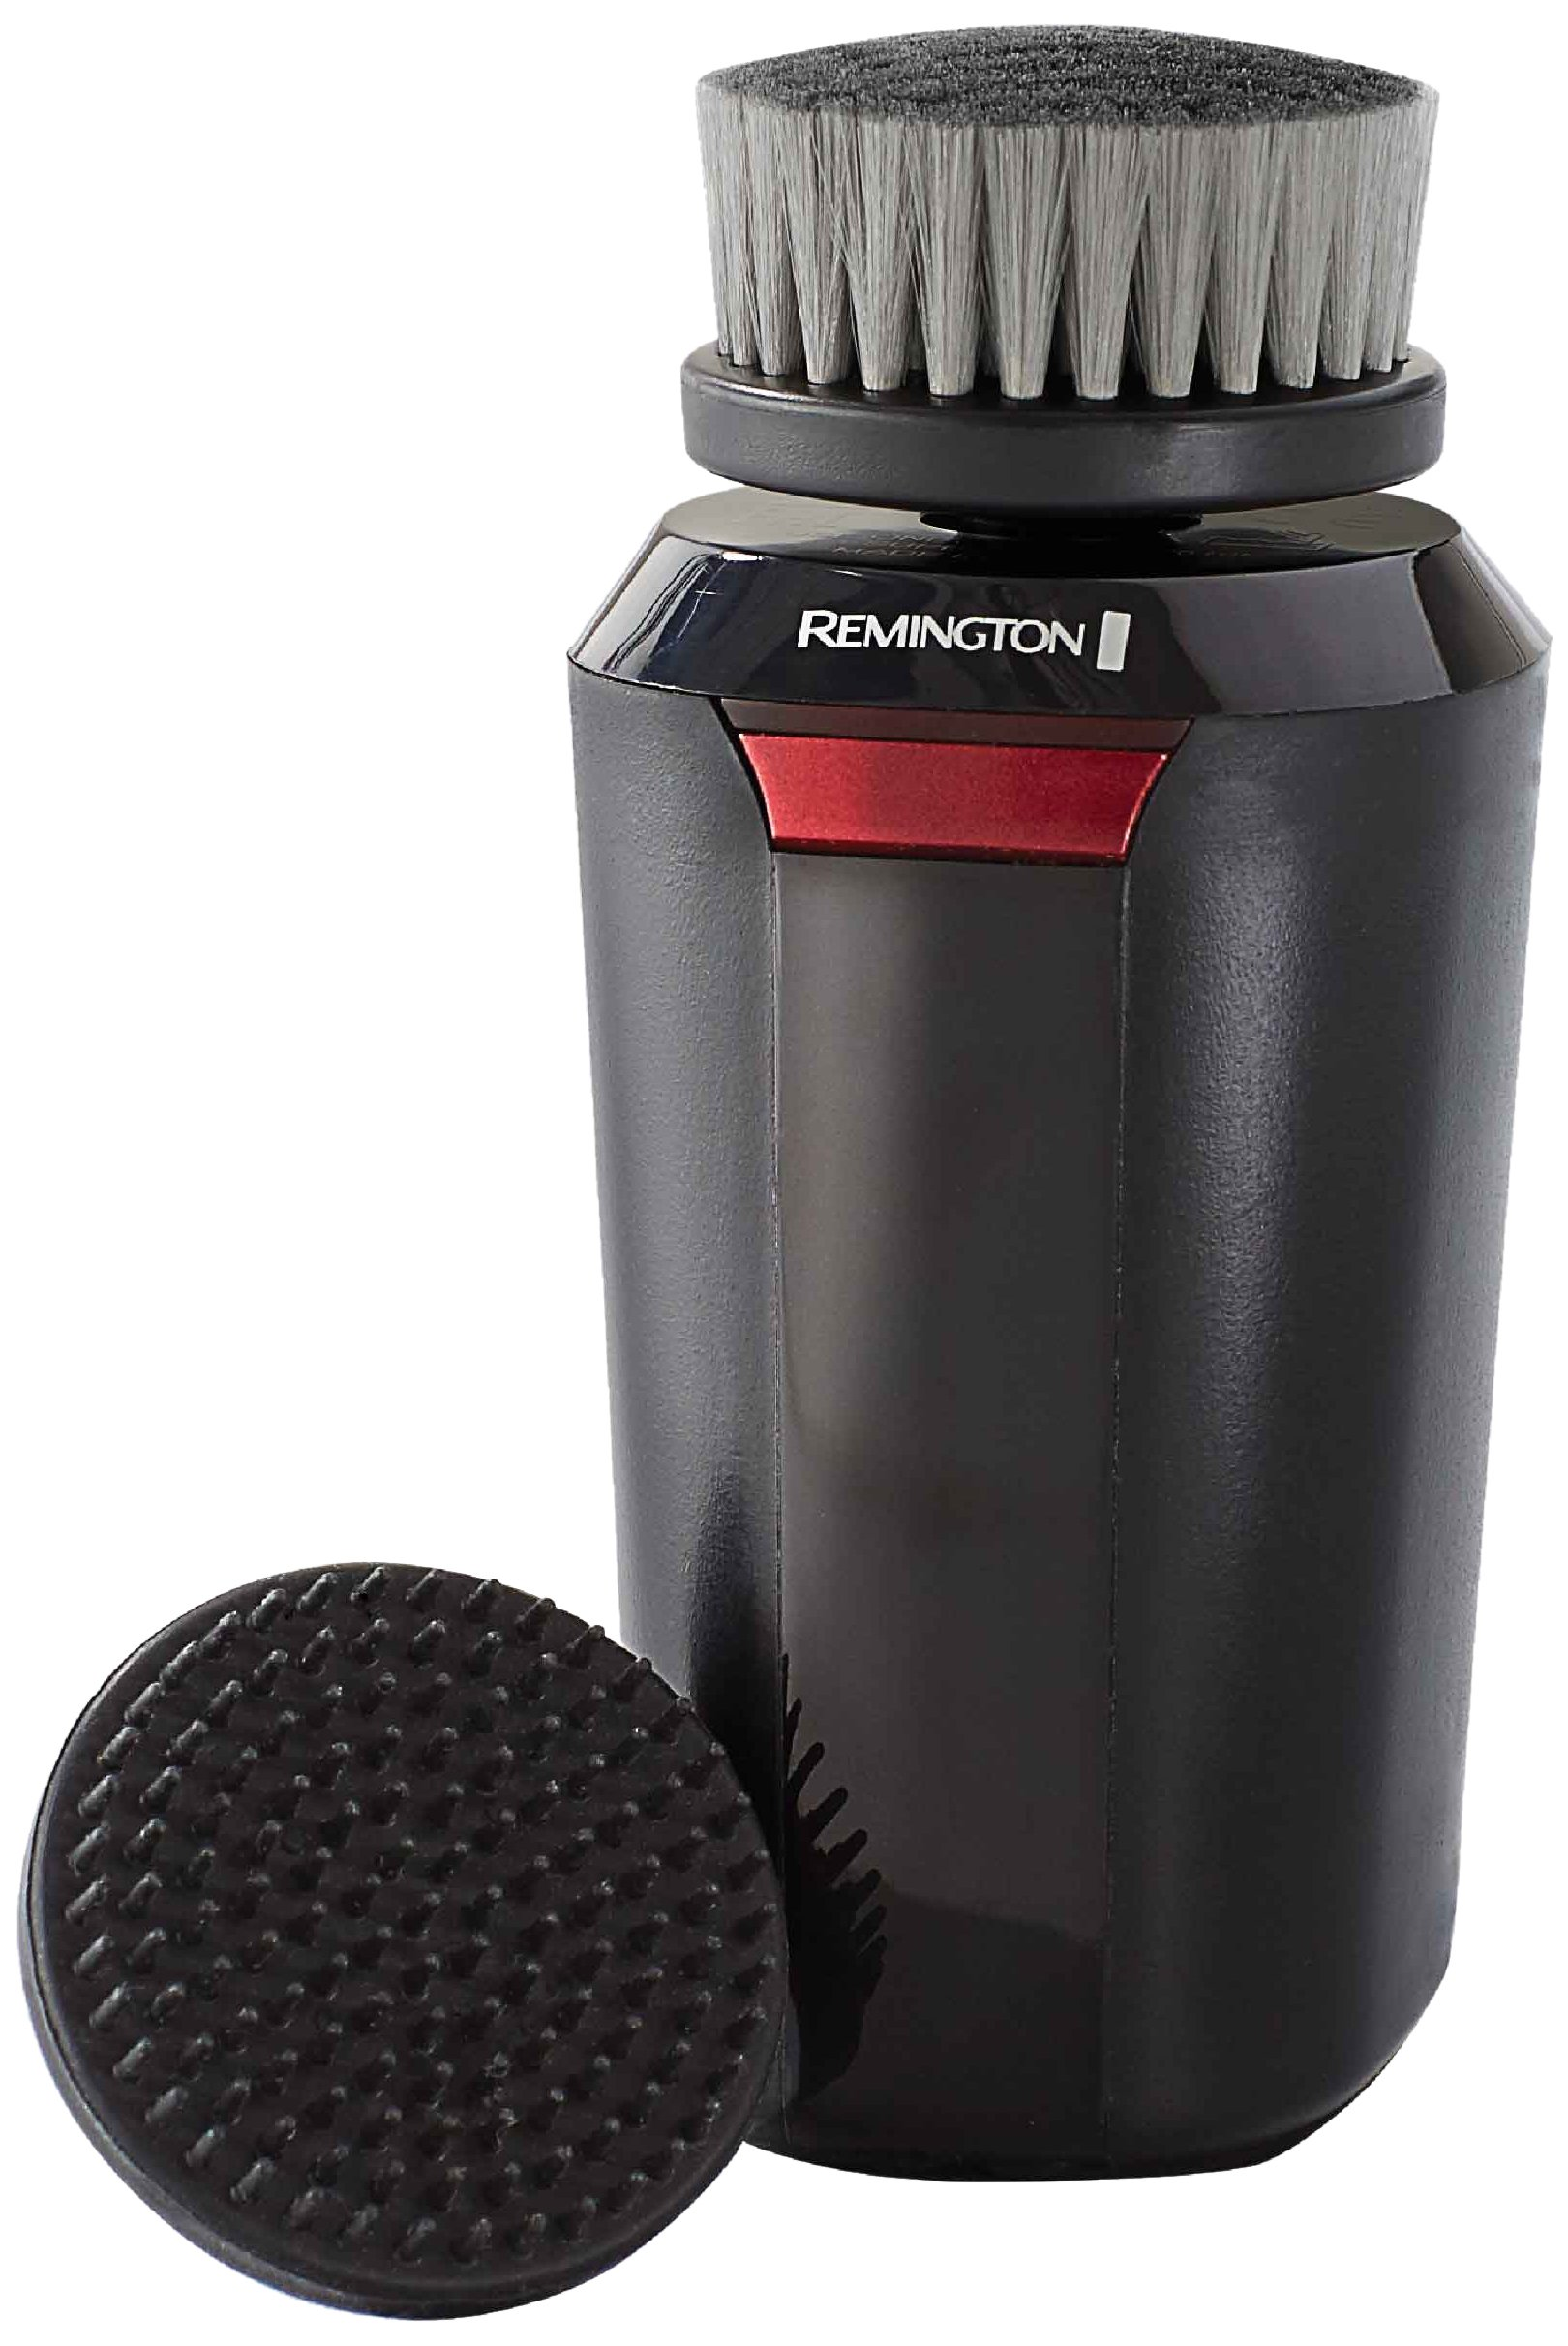 Remington Reveal Men's Compact Facial Cleansing Brush with Pre Shave and Charcoal Heads (FC1500B)